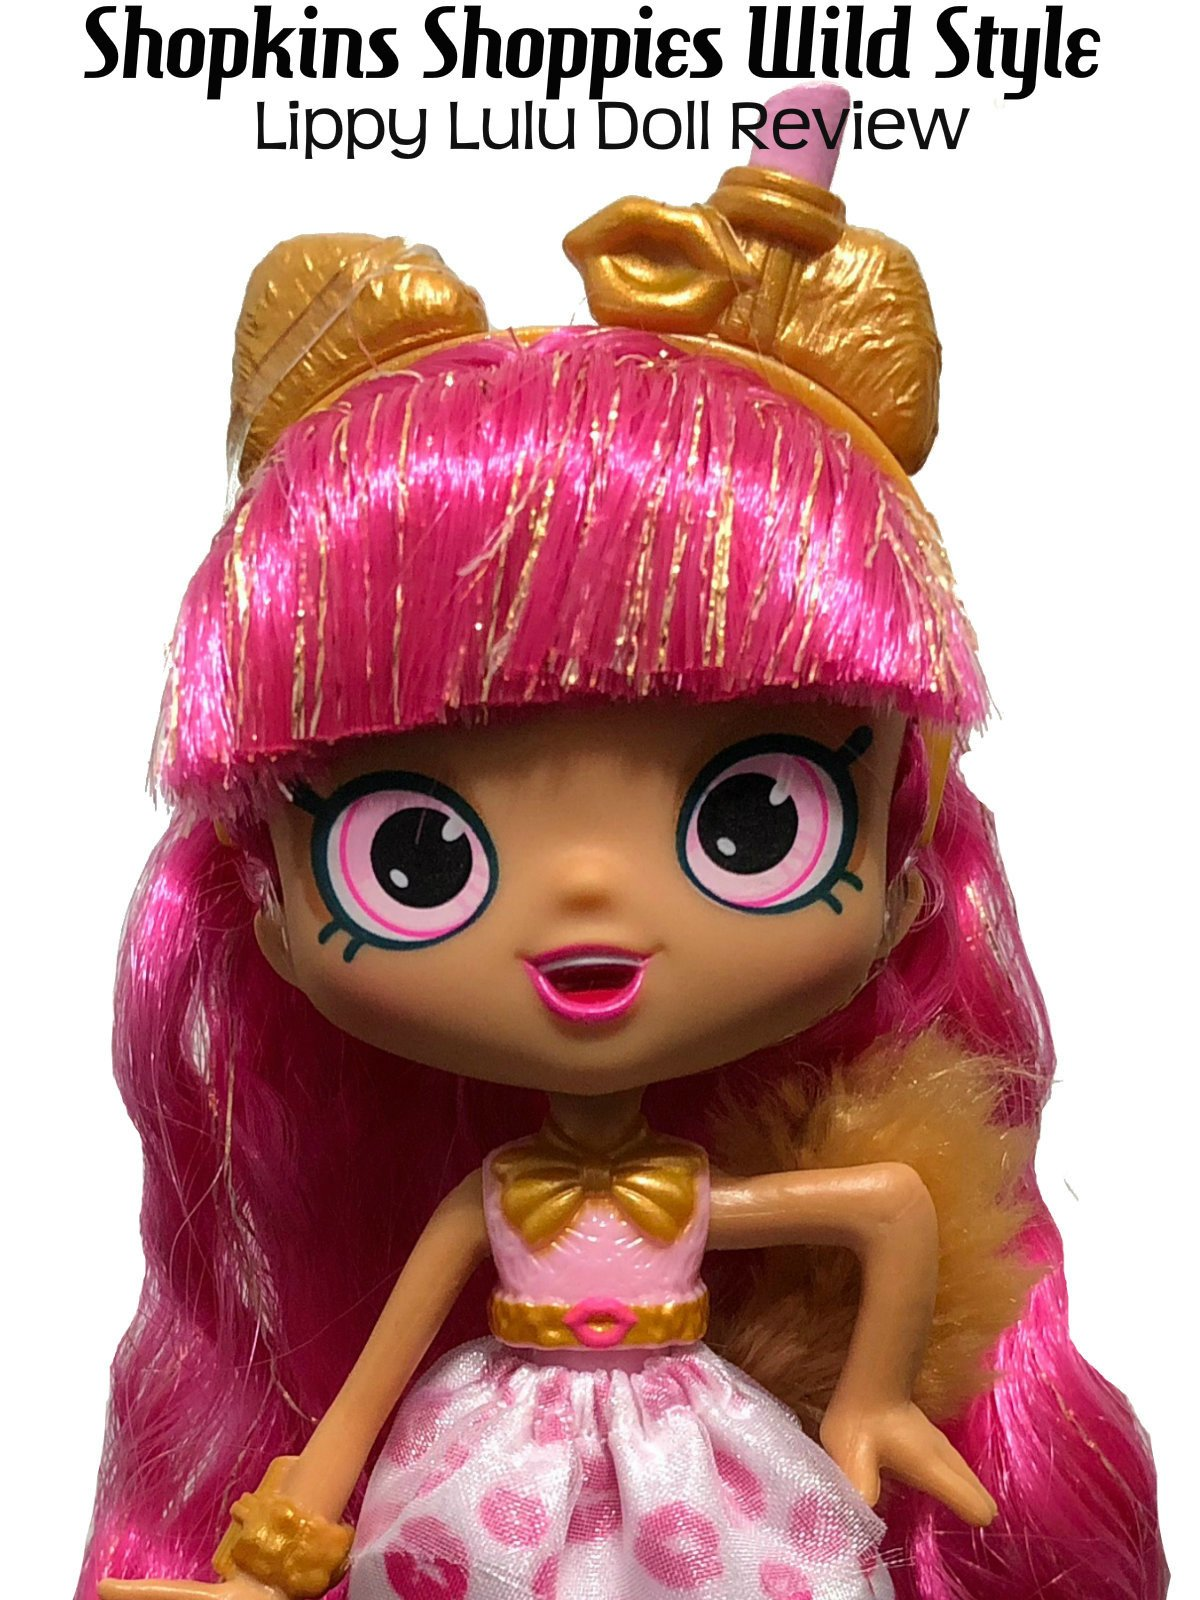 Review: Shopkins Shoppies Wild Style Lippy Lulu Doll Review